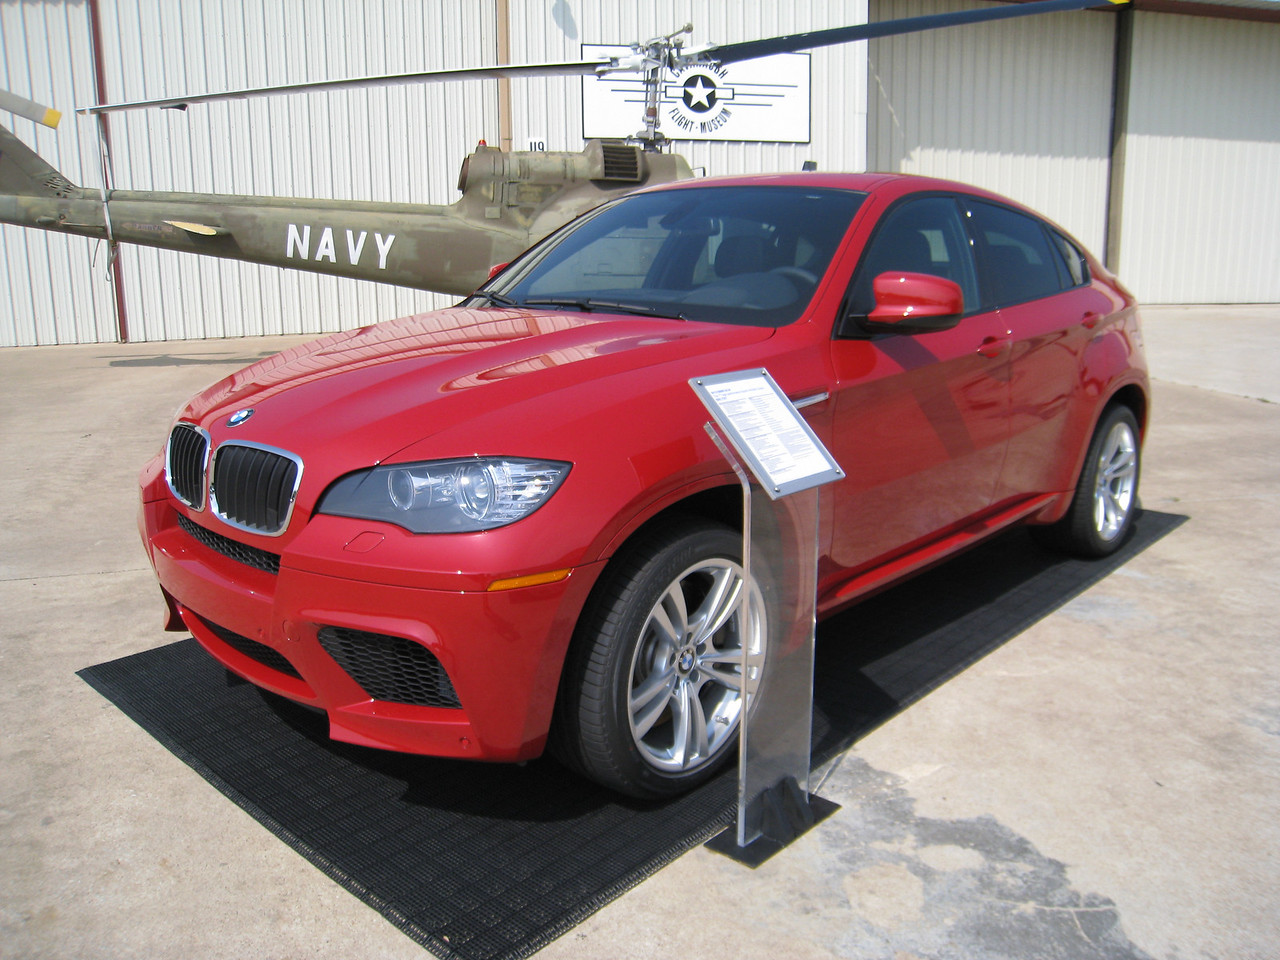 BMW X6 M - Imola Red